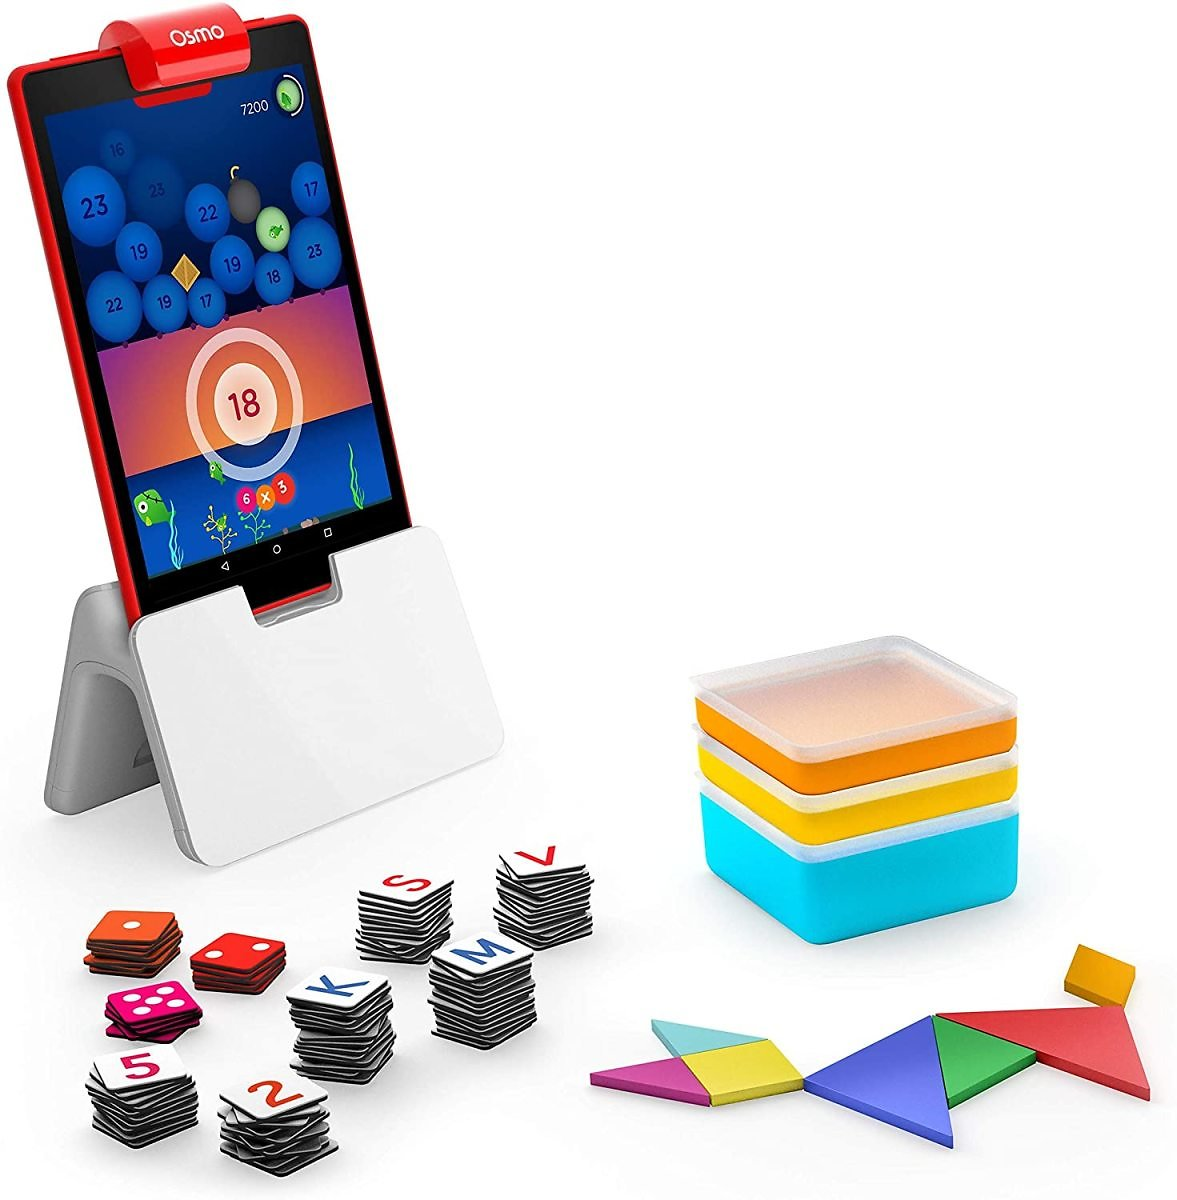 24% OFF - Osmo - Genius Starter Kit for Fire Tablet - 5 Educational Learning Games - Ages 6-10